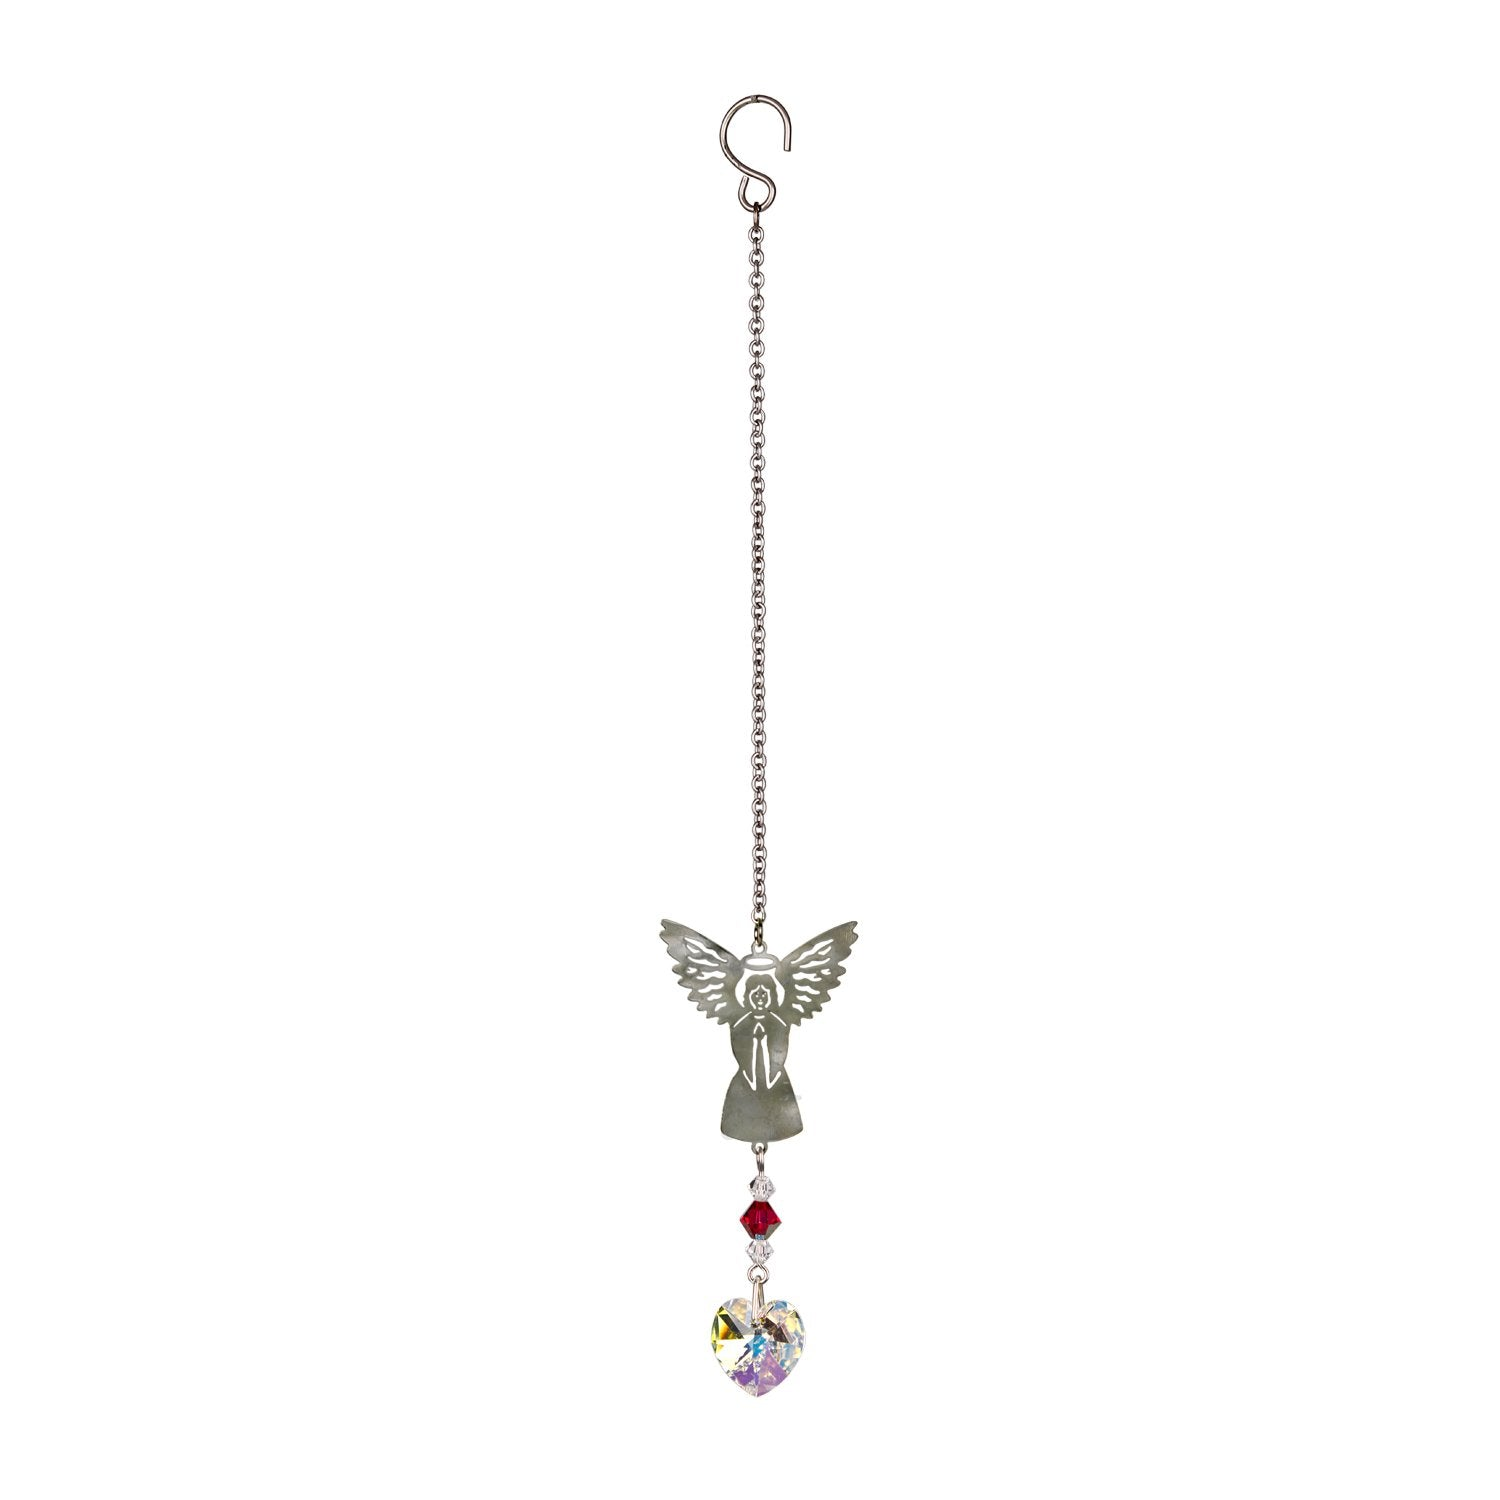 Birthstone Angel Crystal Suncatcher - July full product image